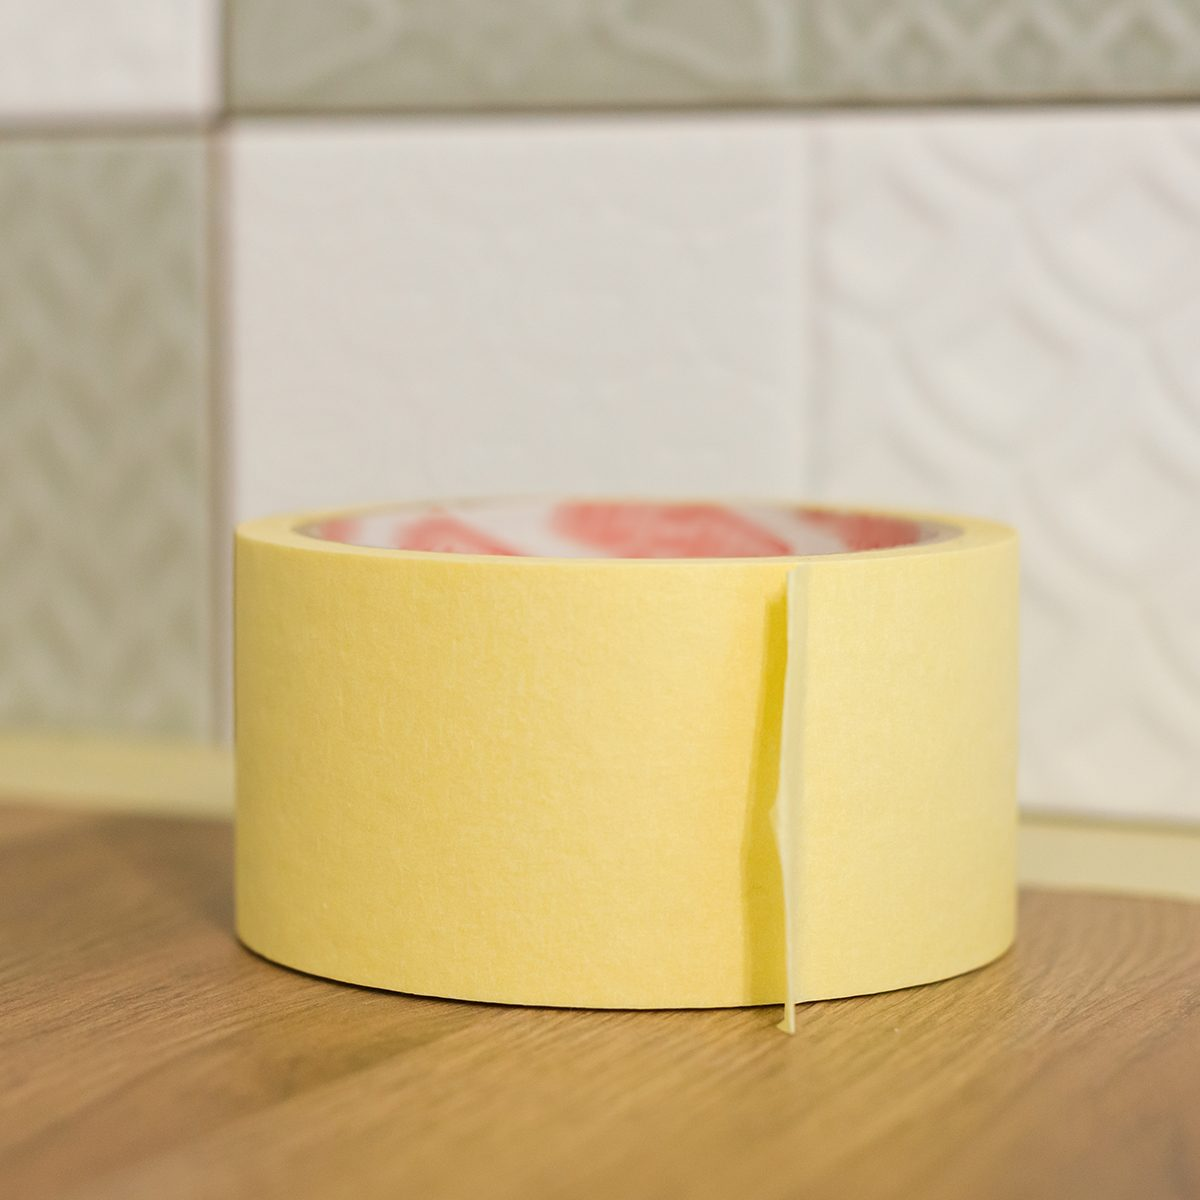 masking tape on kitchen counter